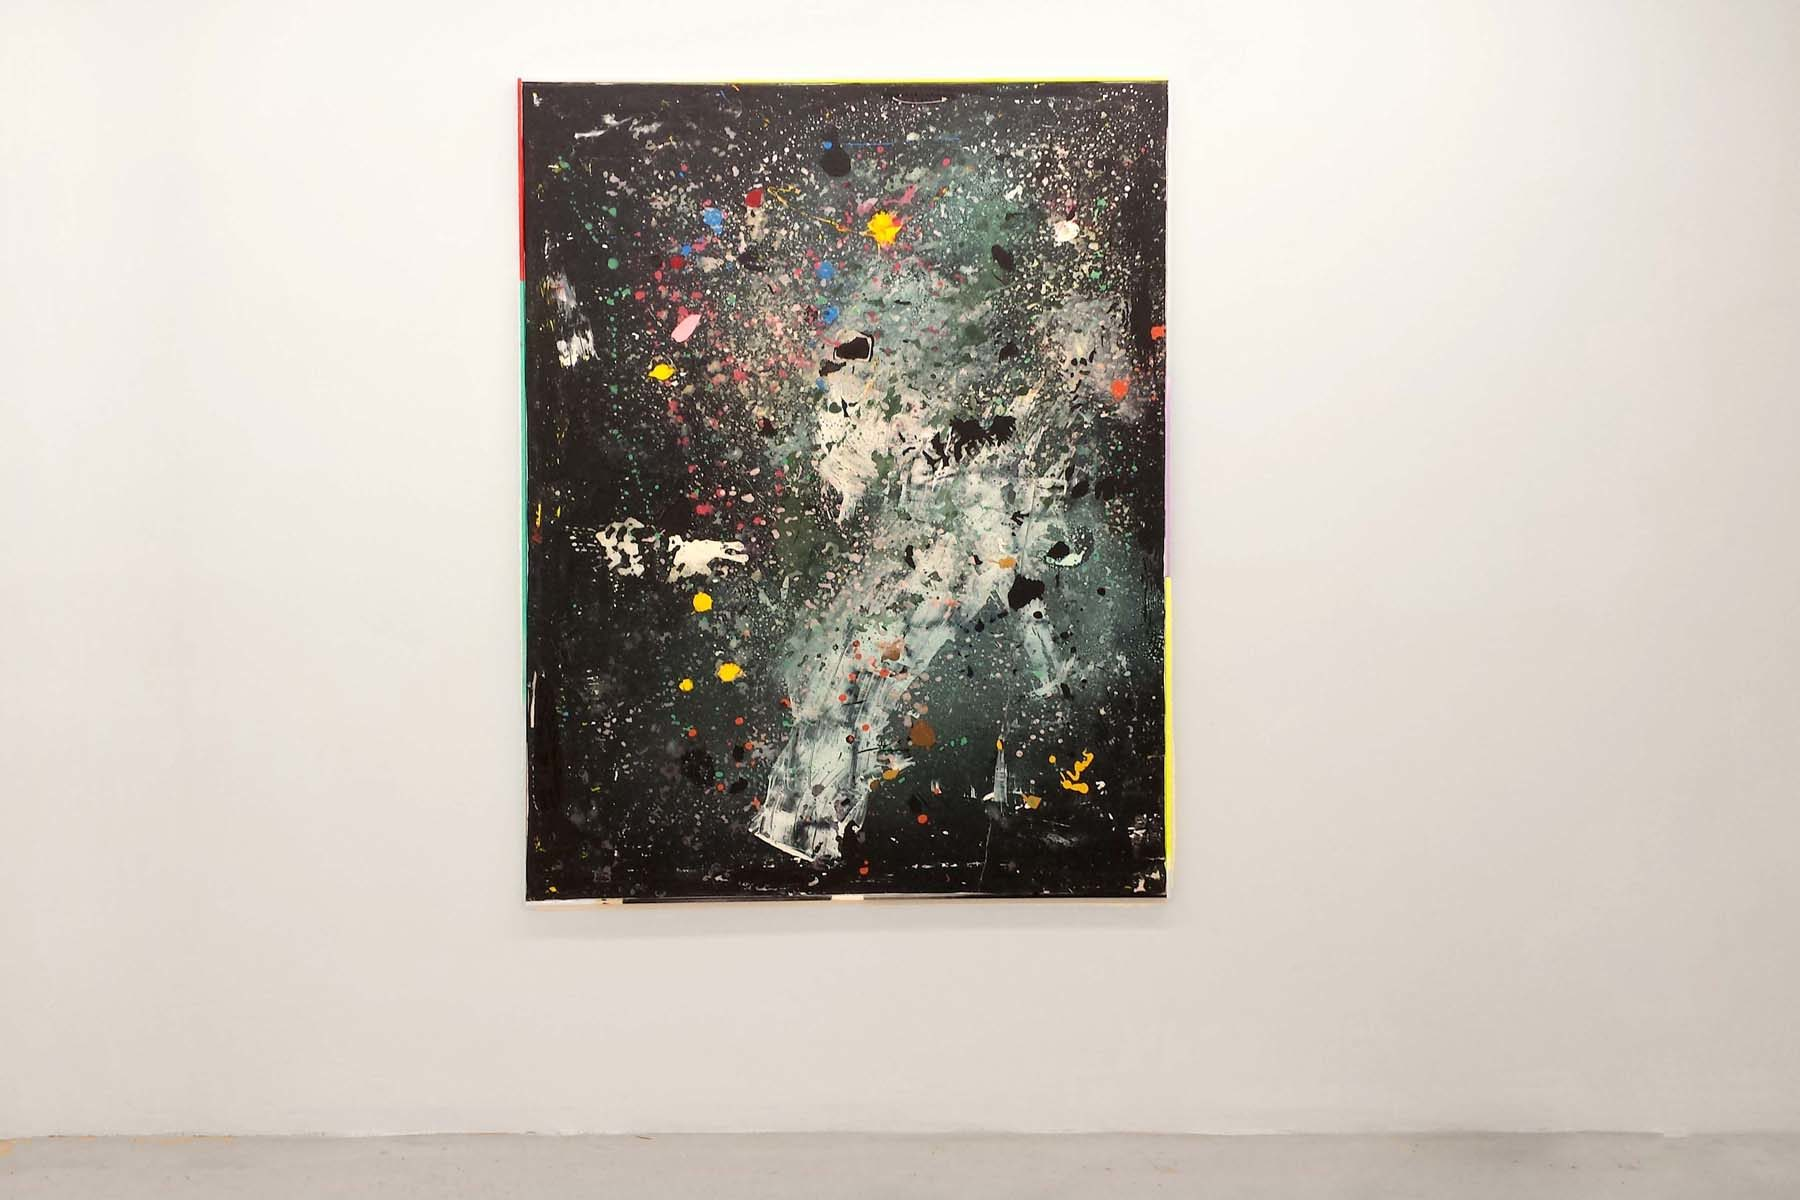 Tiziano Martini, Untitled, 2015, acrylics, monotype process, dirt of the studio and primer on cotton canvas, 161 x 121 cm